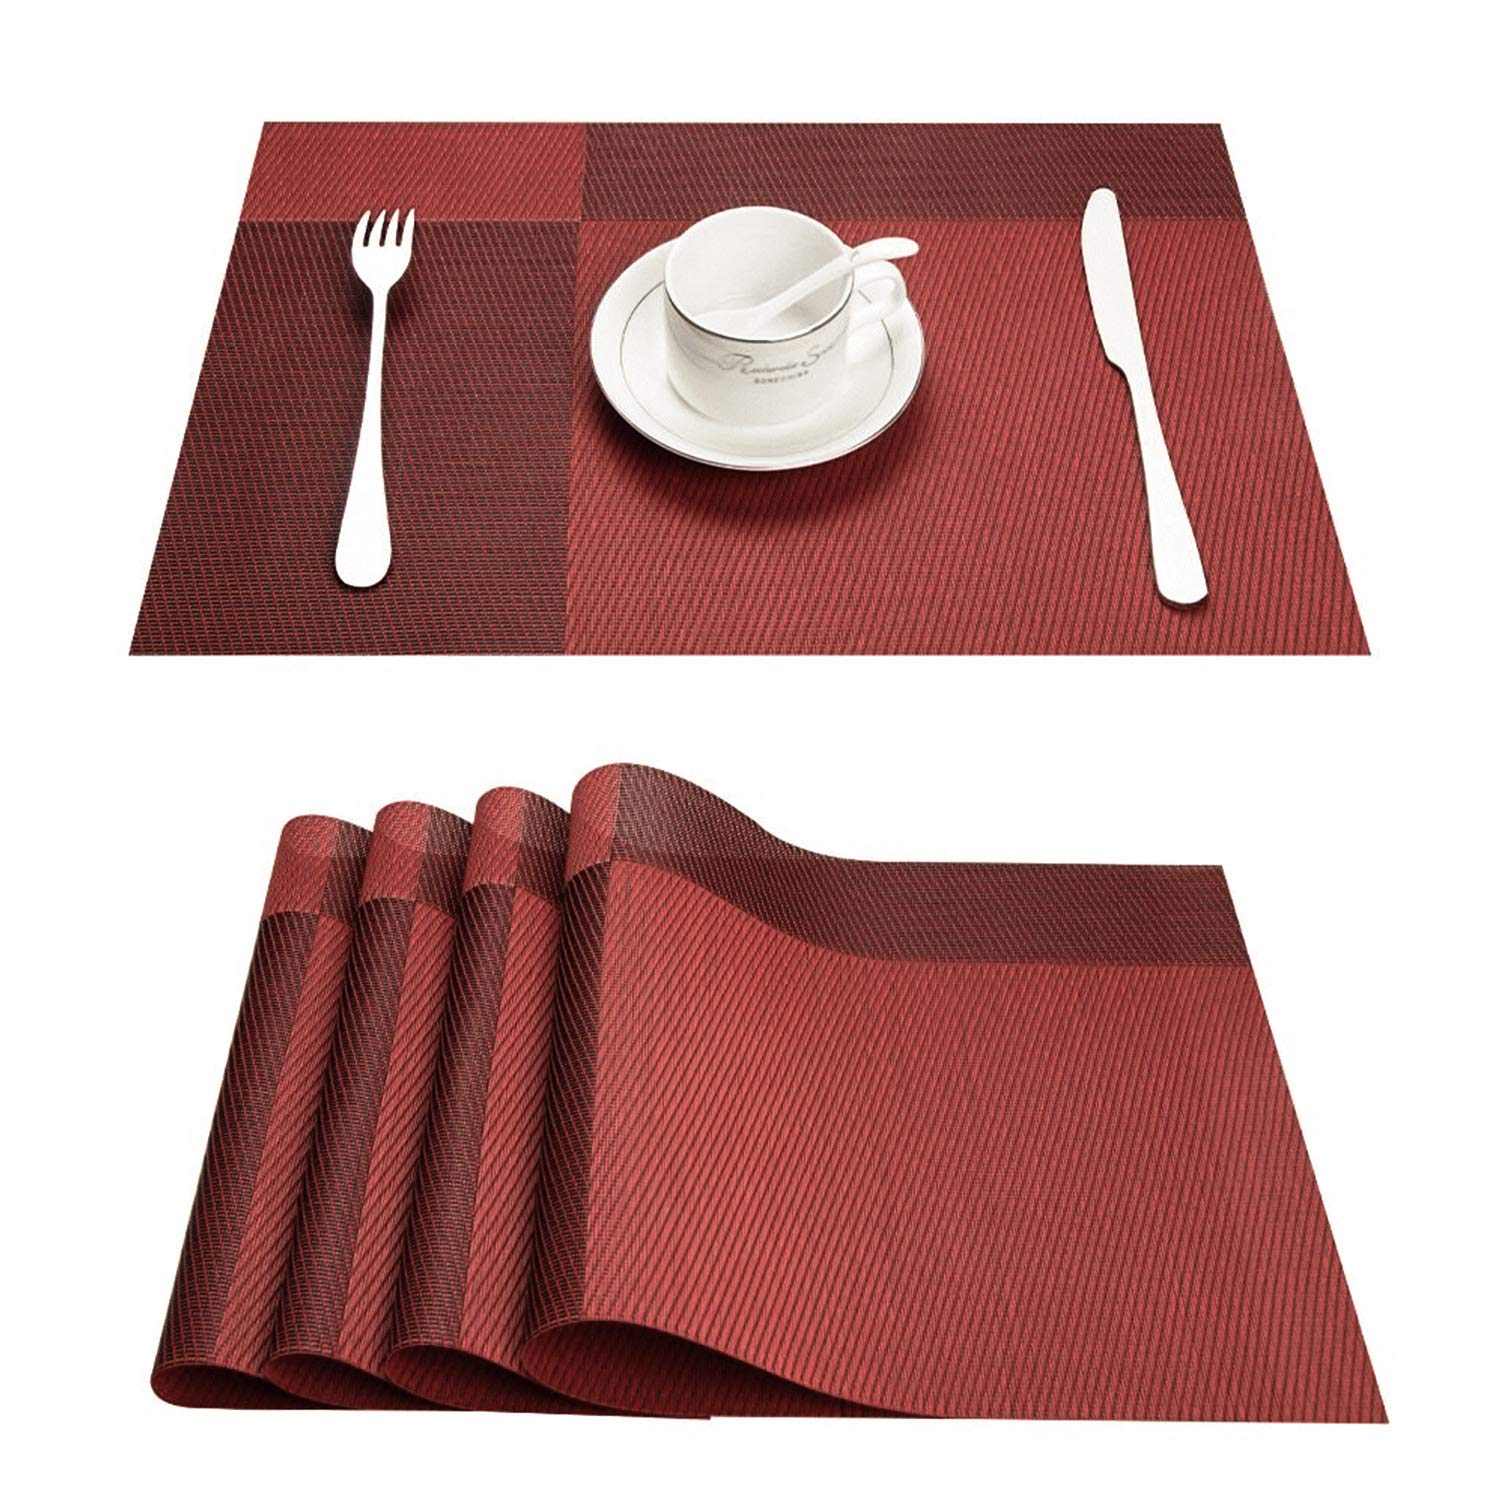 Top Finel Table Placemats Vinyl Crossweave Stain Resistant Wipeable Non-Slip Kitchen Outdoor,Red,Set of 8